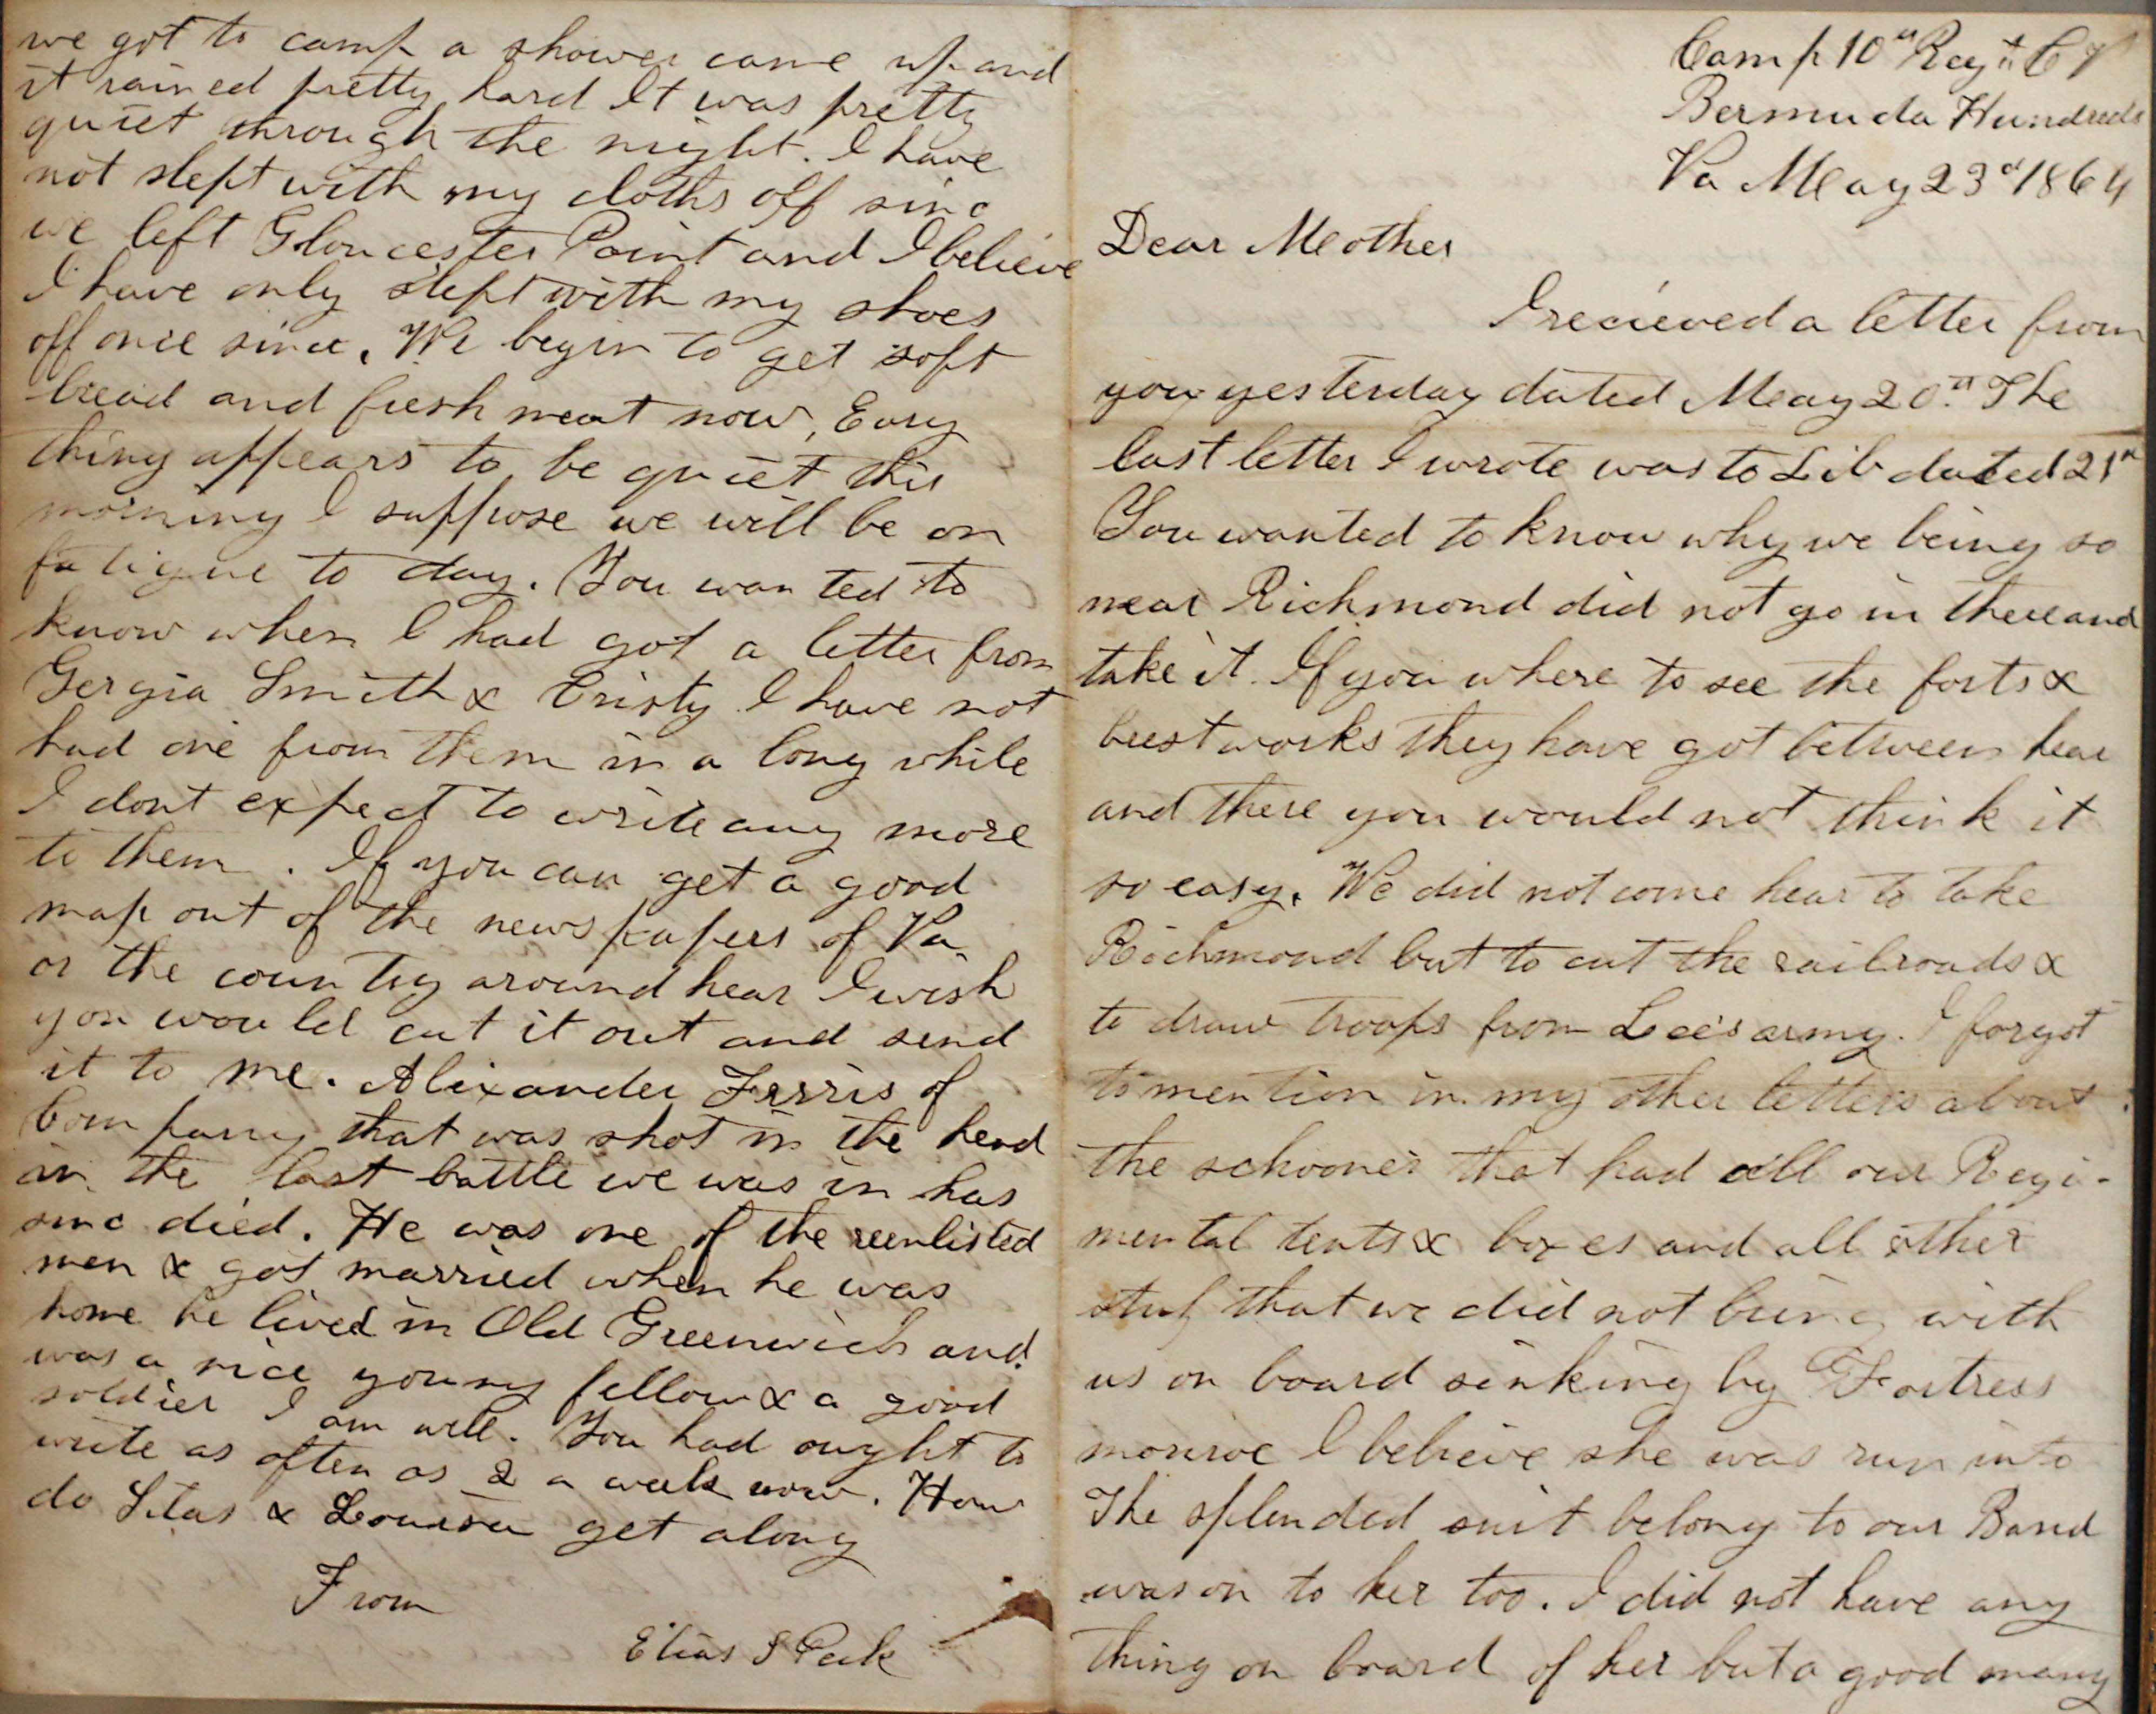 18640523 Elias Peck 10th CT Letter Page 1 and 4